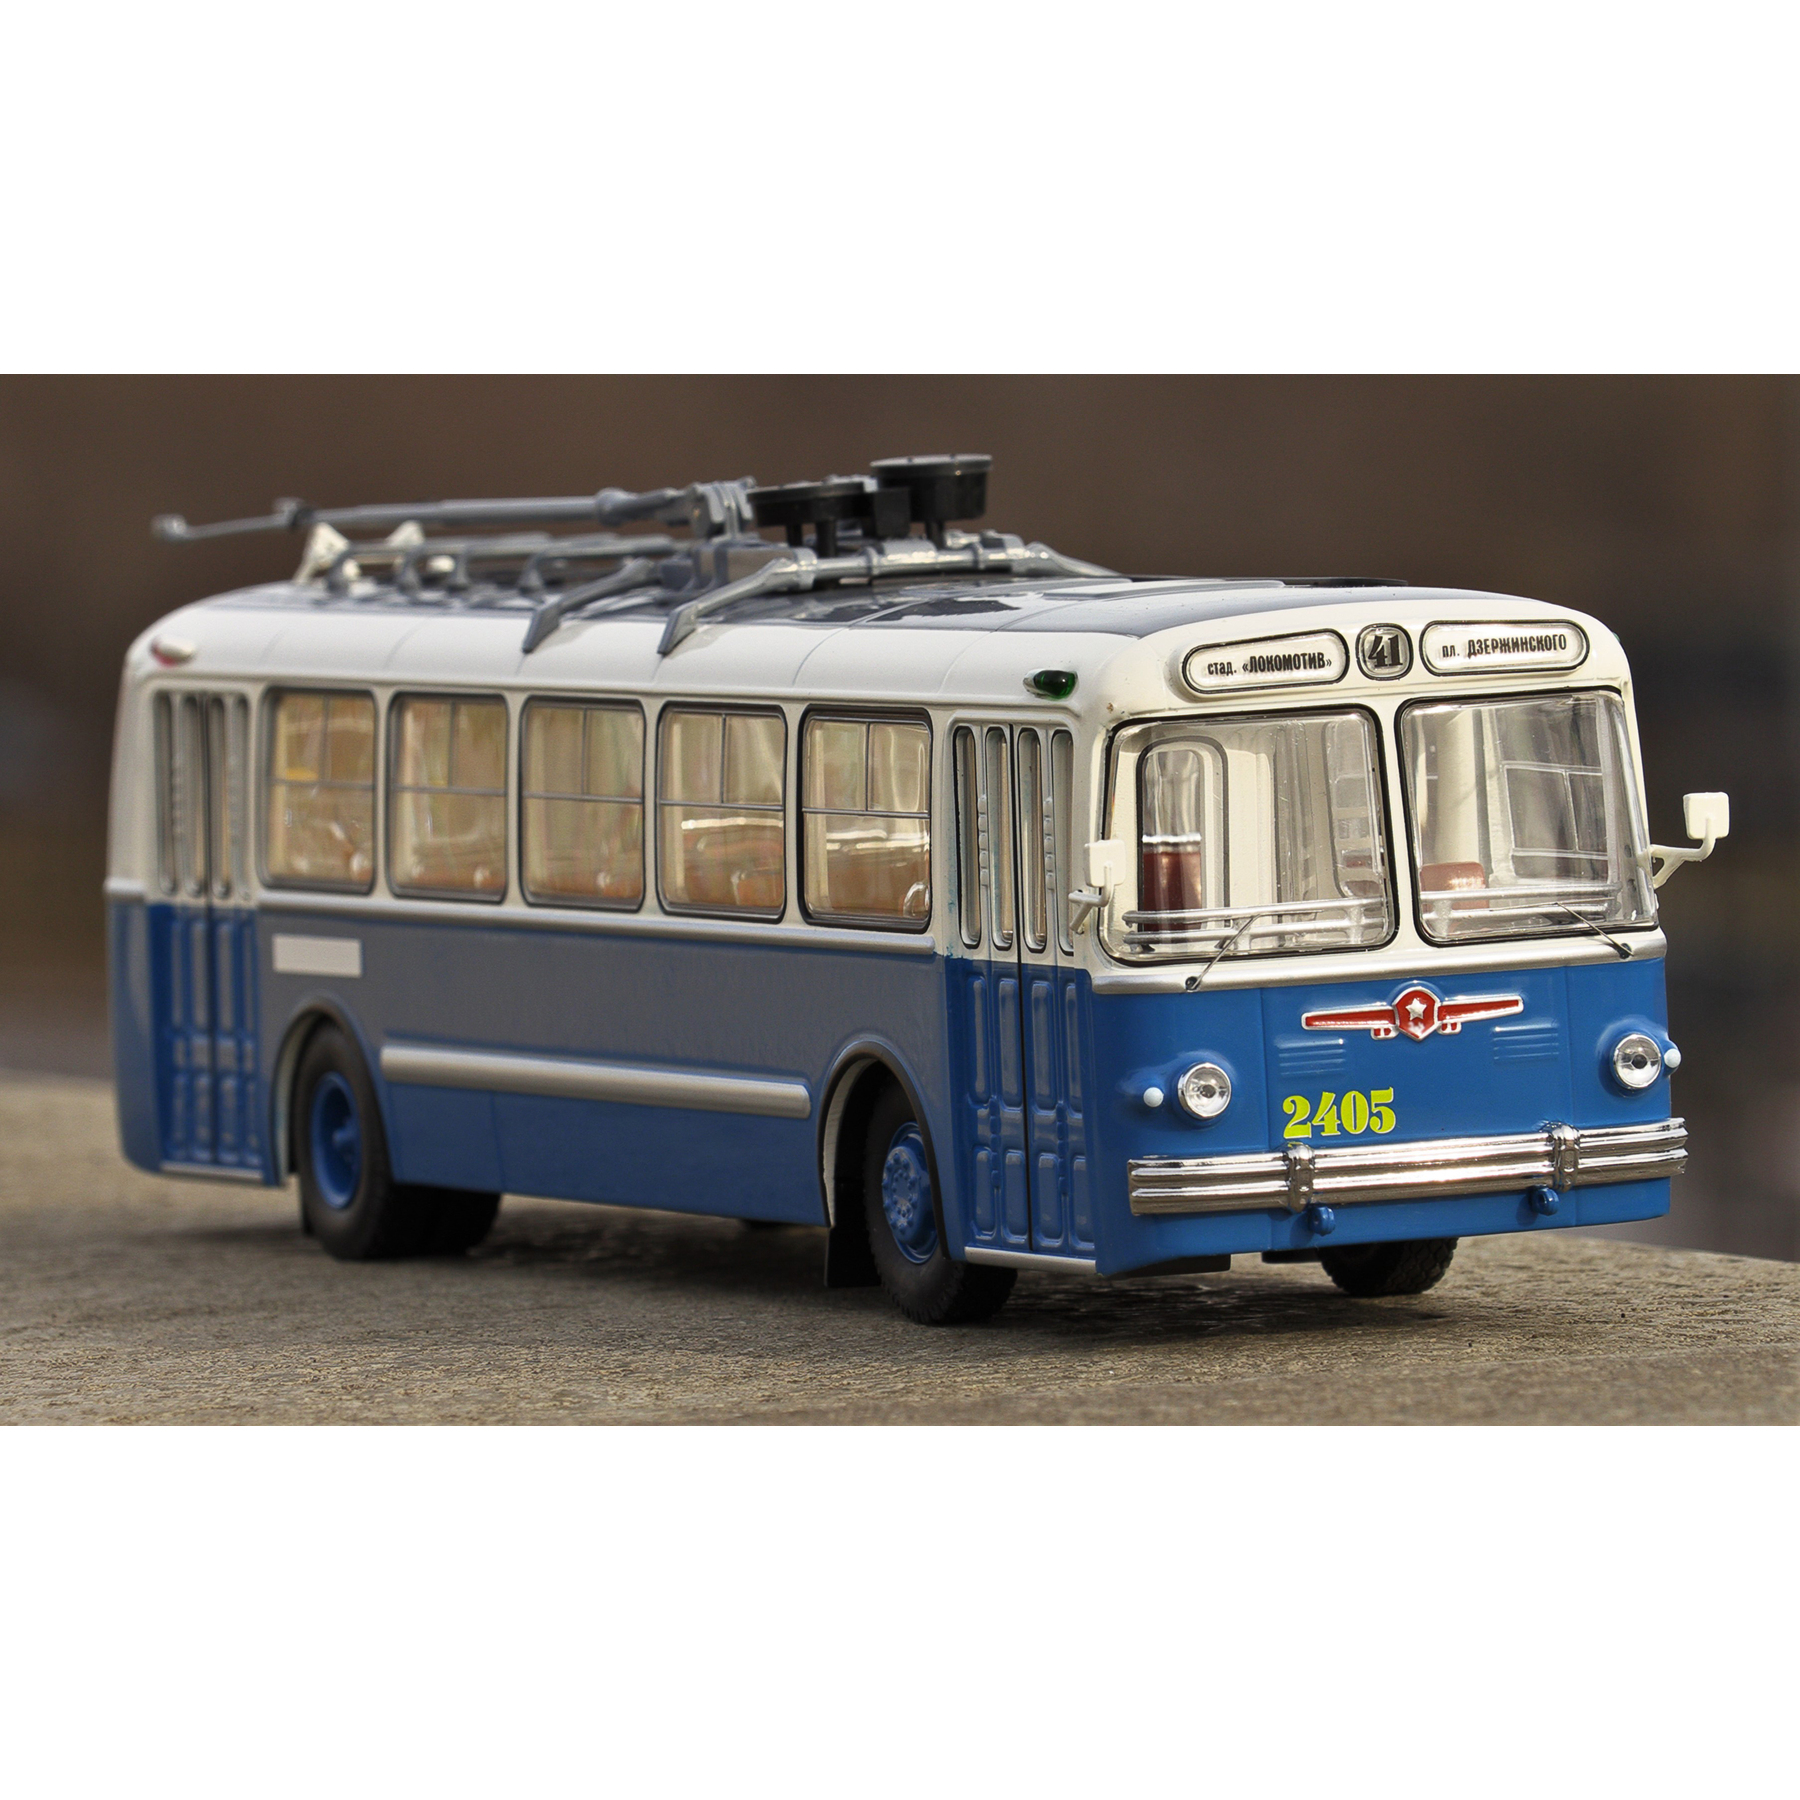 Scale Model 5 White And Blue 1:43 Classicbus Bus Toy Retro Soviet